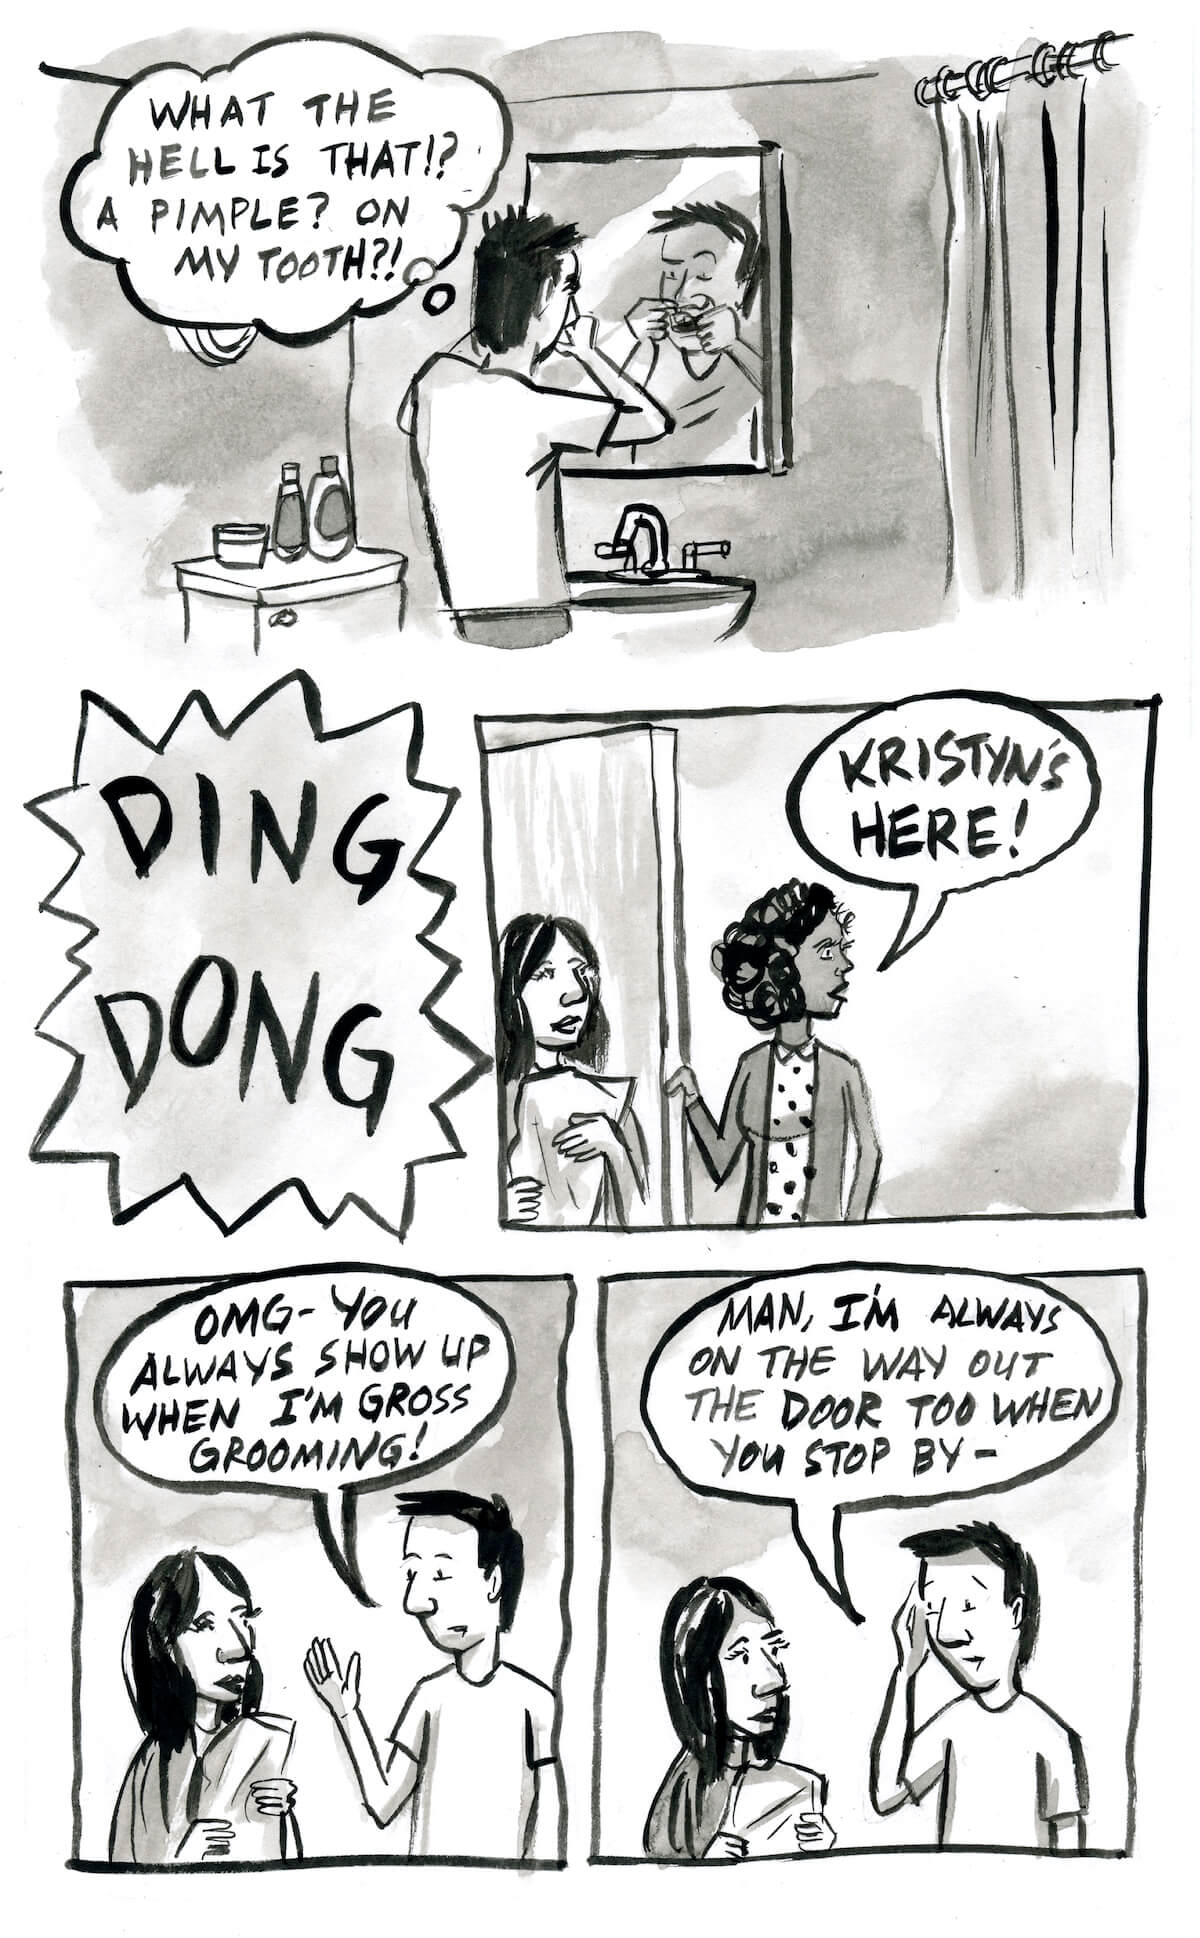 The Seattle Review Of Books Gross Grooming Comic